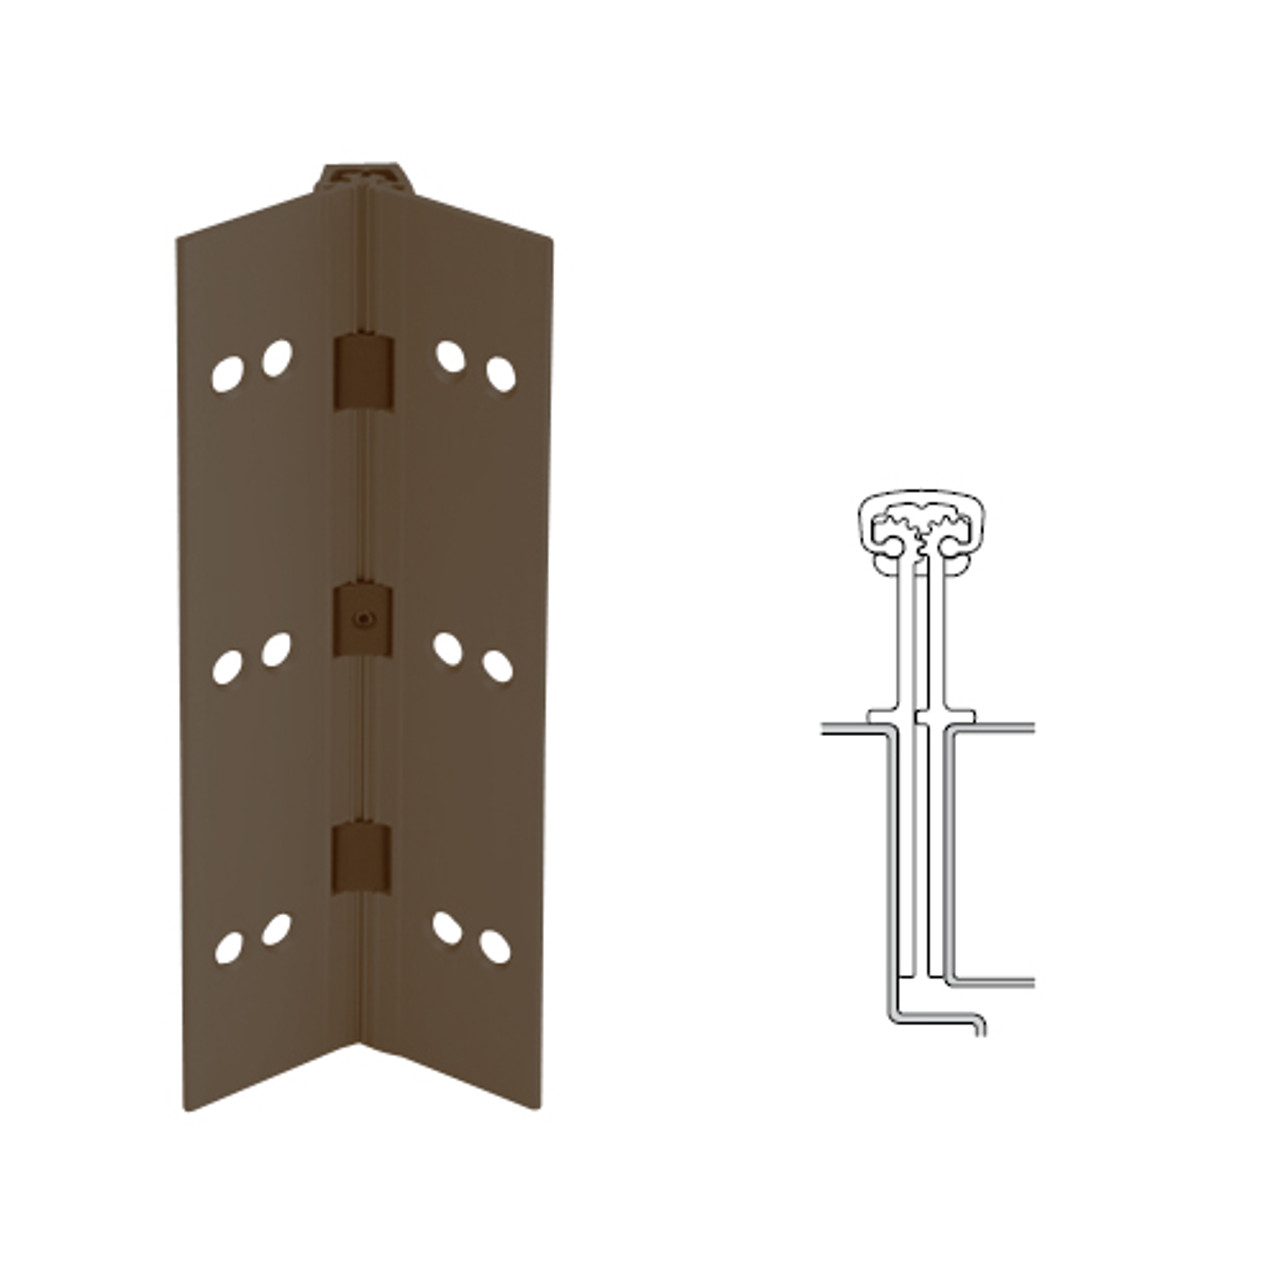 040XY-313AN-85-WD IVES Full Mortise Continuous Geared Hinges with Wood Screws in Dark Bronze Anodized